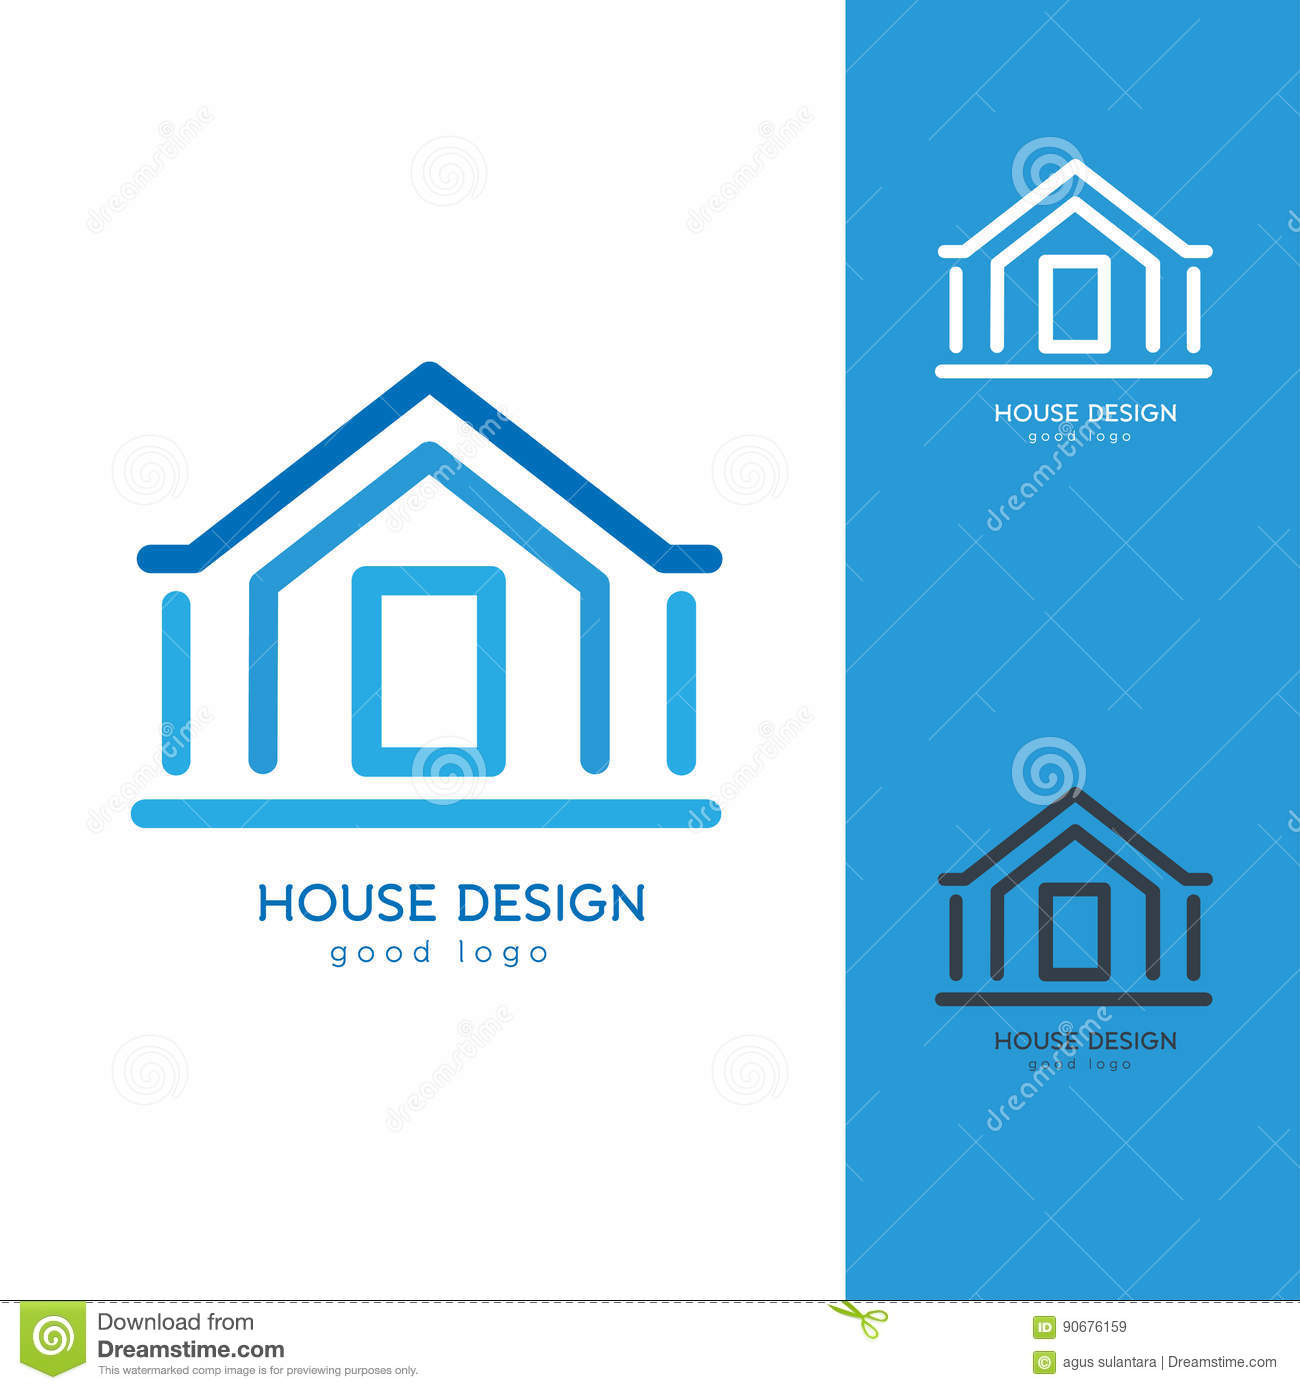 House design logo - Royalty Free Download Casa Moderna Logo Design